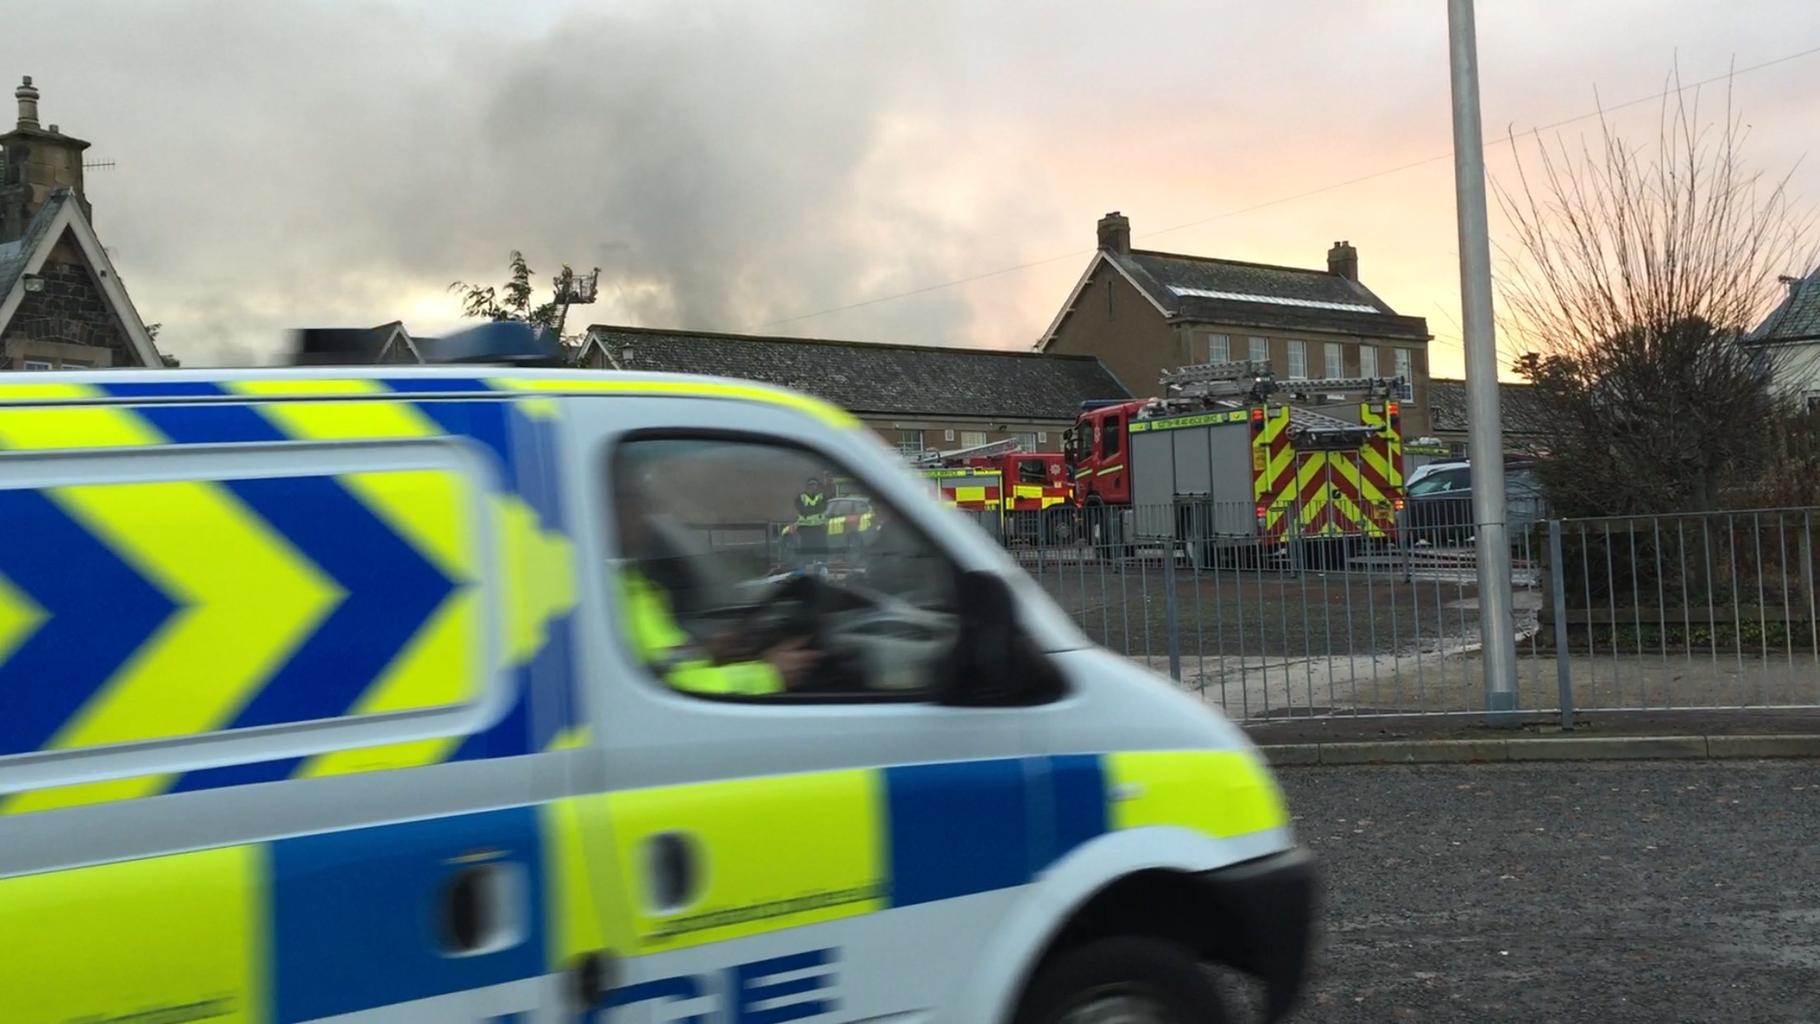 Peebles High School: Roof collapses as firefighters tackle 'severe' blaze